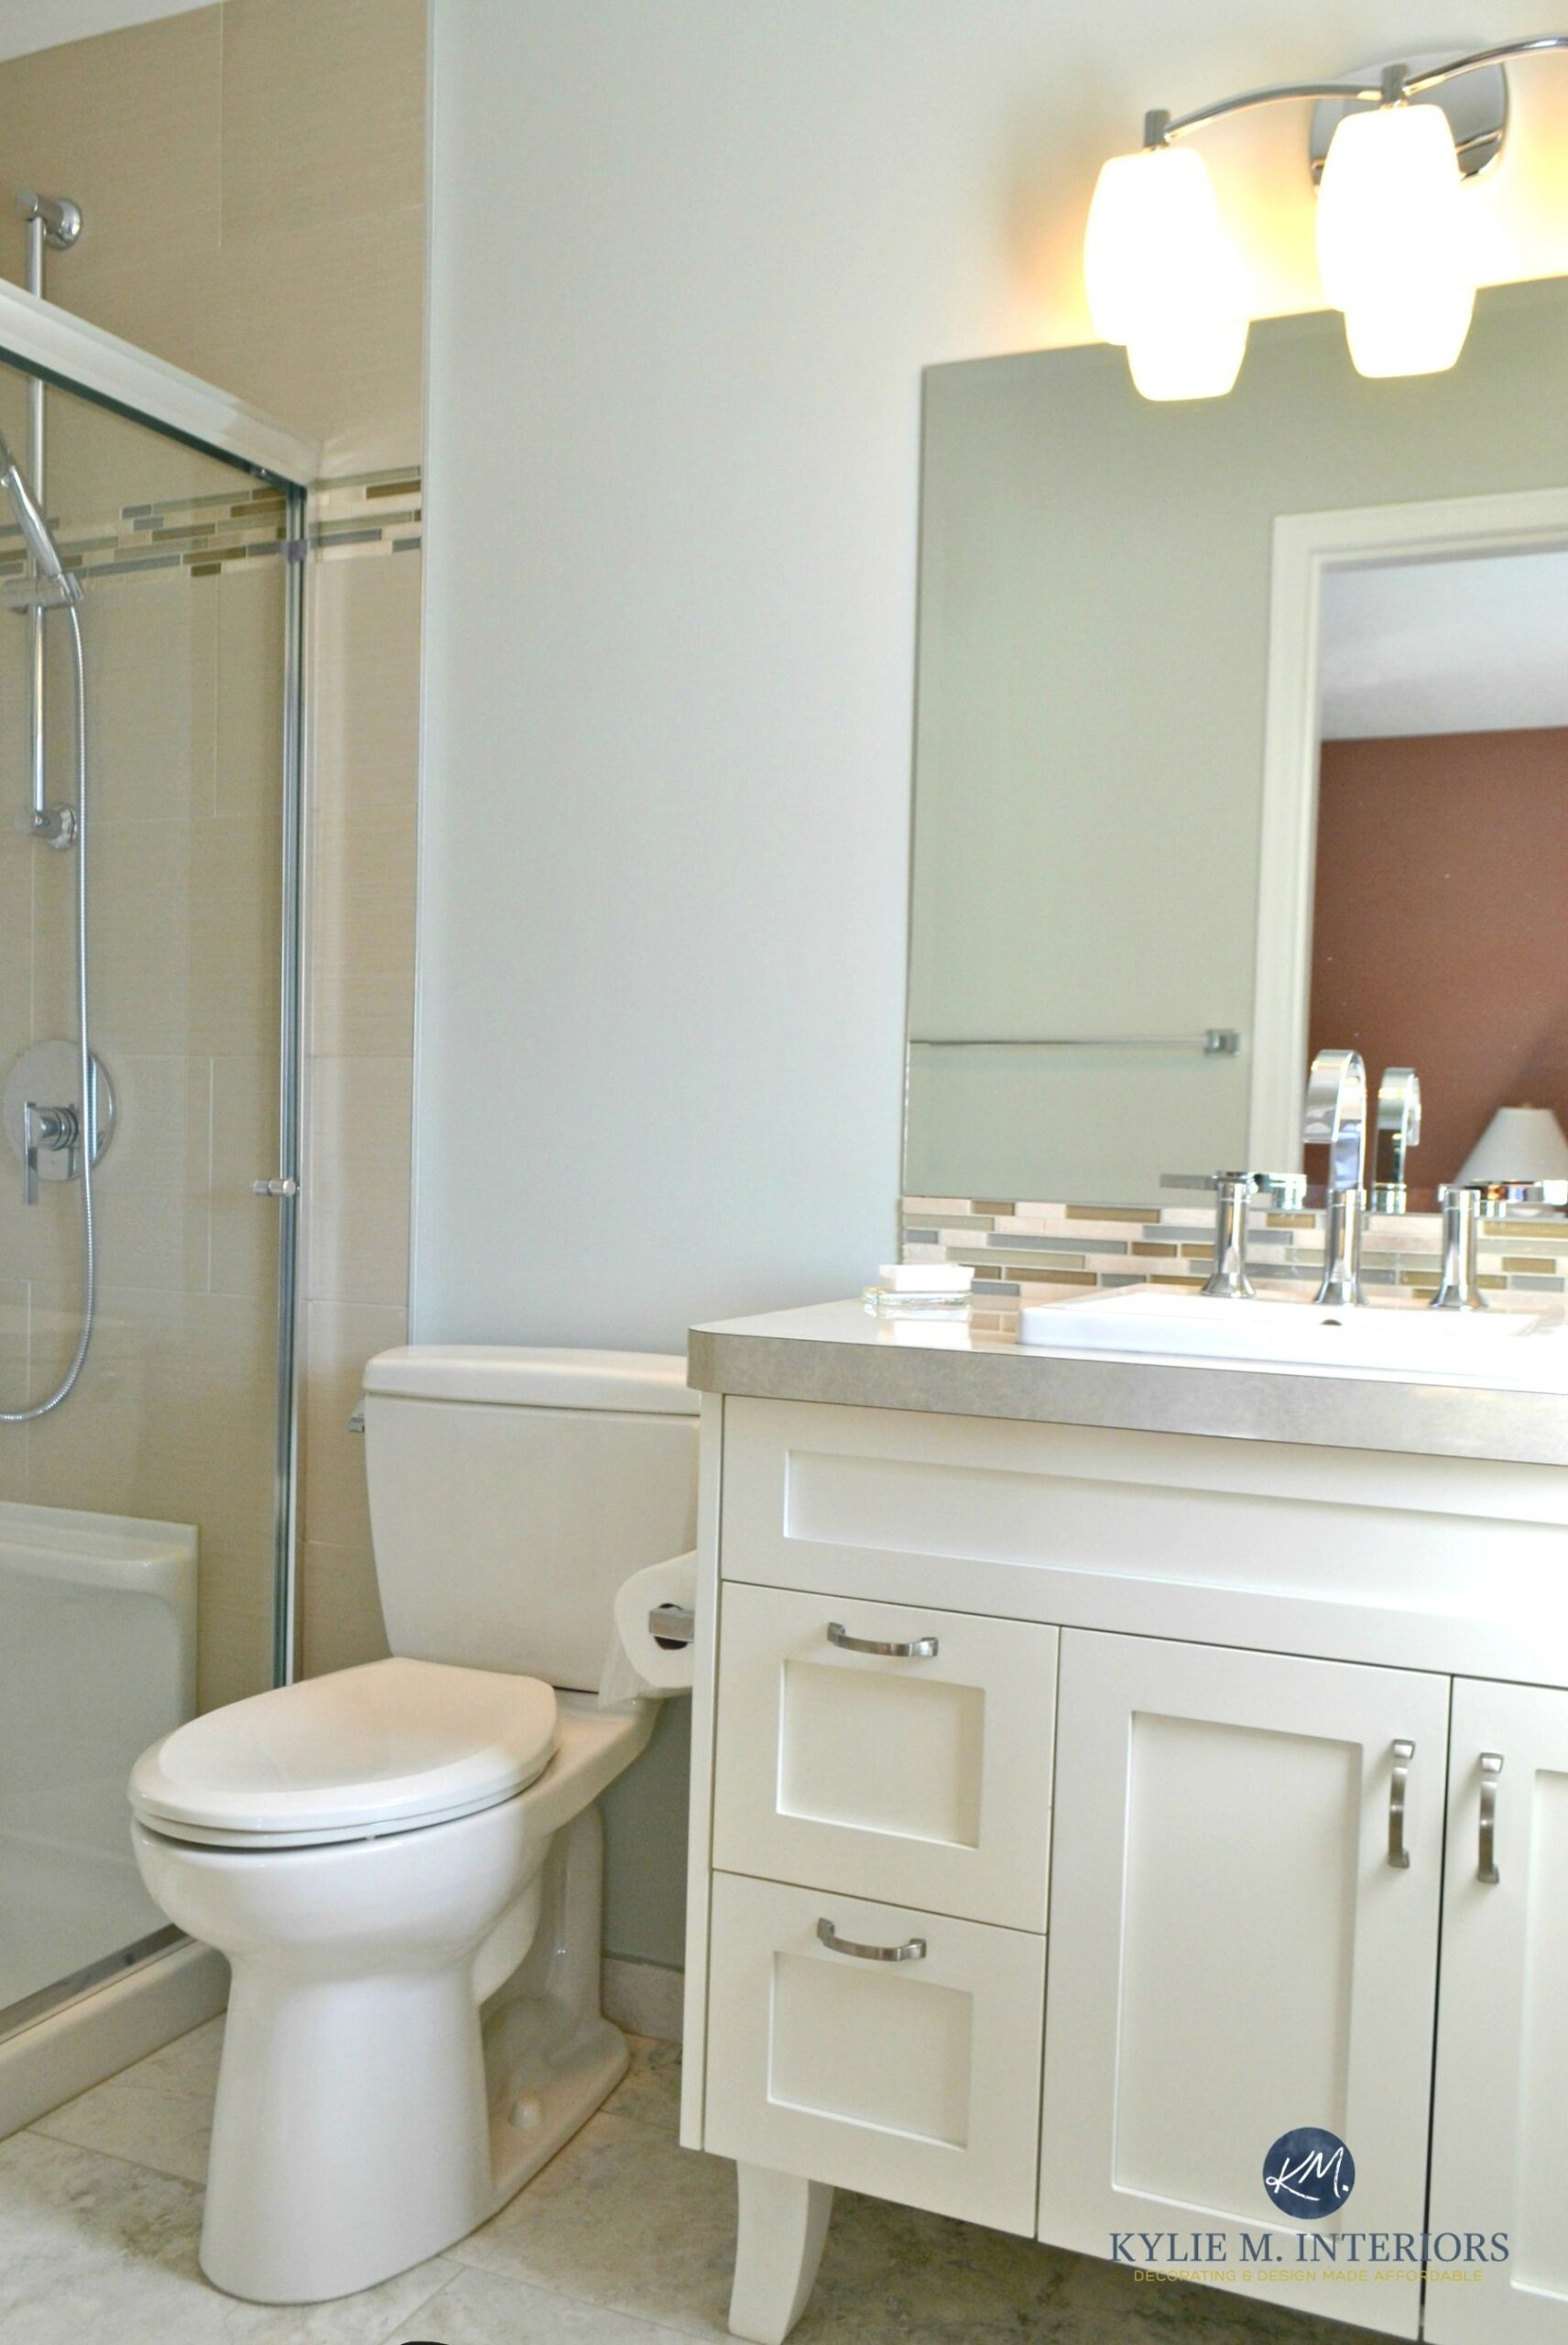 Benjamin Moore Gray Cashmere Helps This Small Bathroom throughout Green And Gray Bathroom